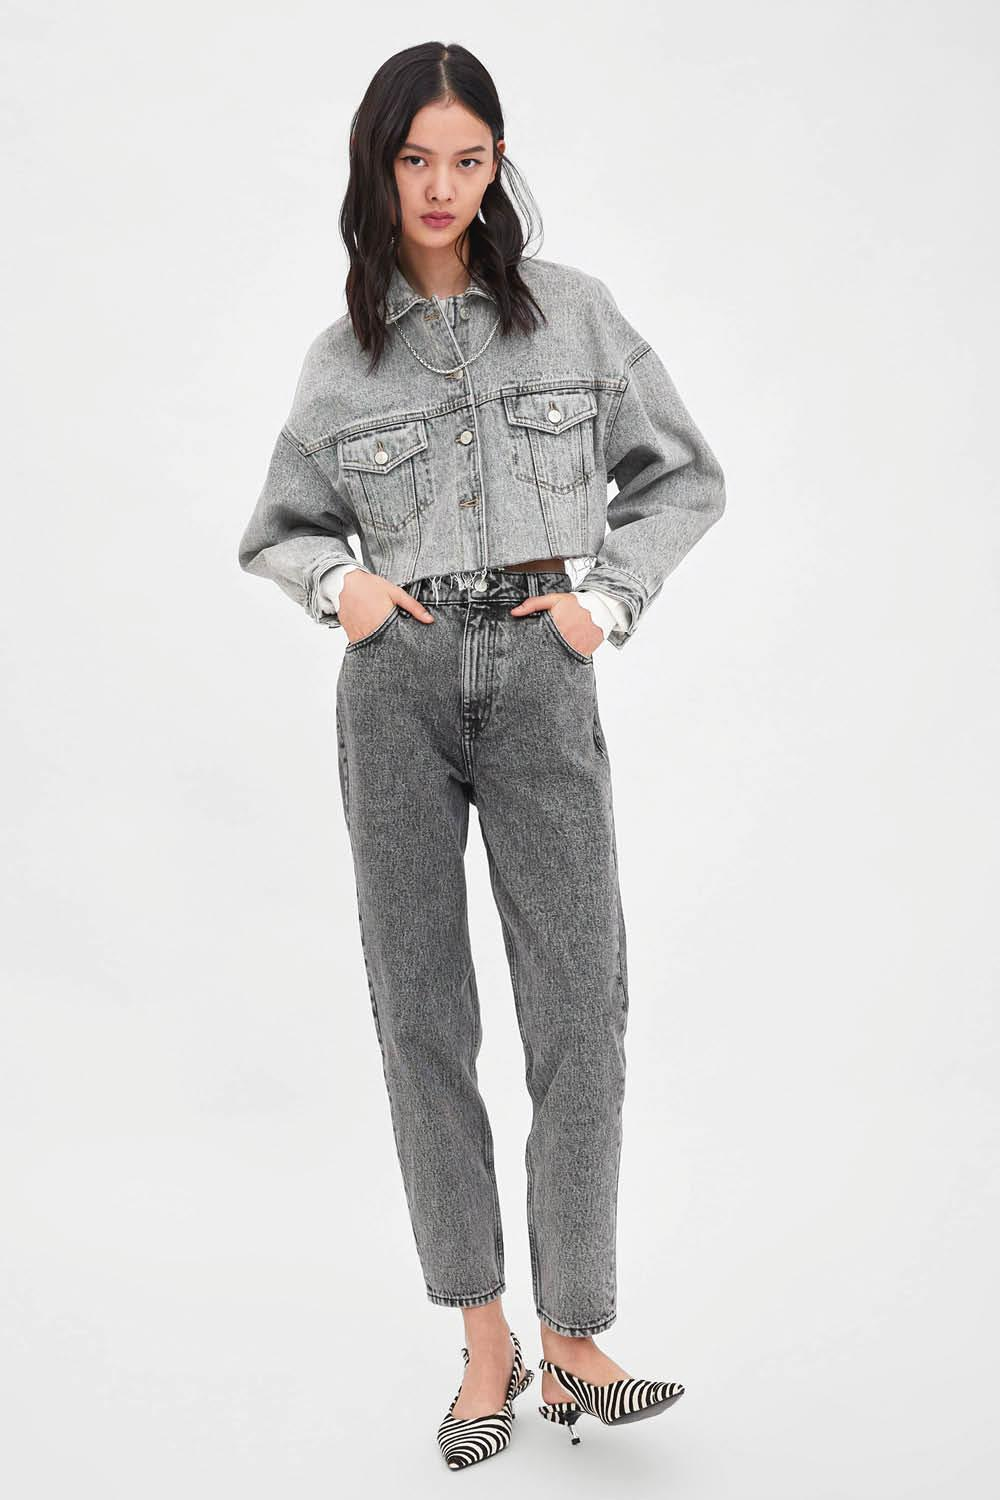 pantalon mom jeans zara tallas grandes. Mom jeans